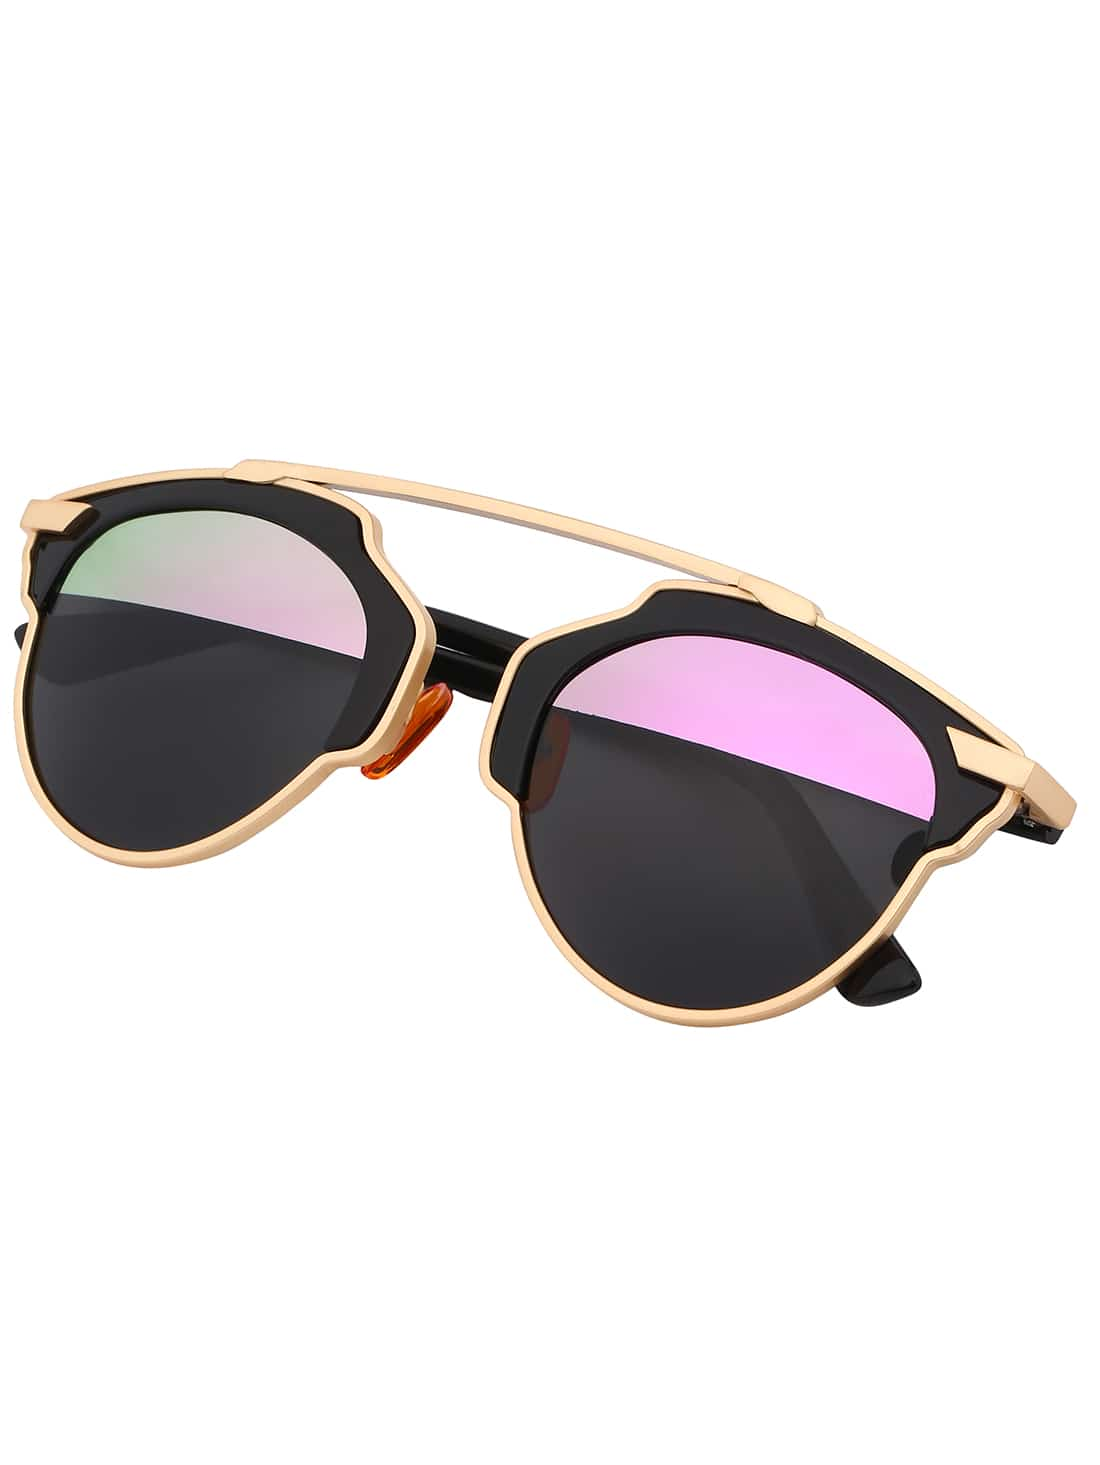 Contrast Cut Out Frame Fashion Sunglasses Shein Sheinside: what style glasses are in fashion 2015